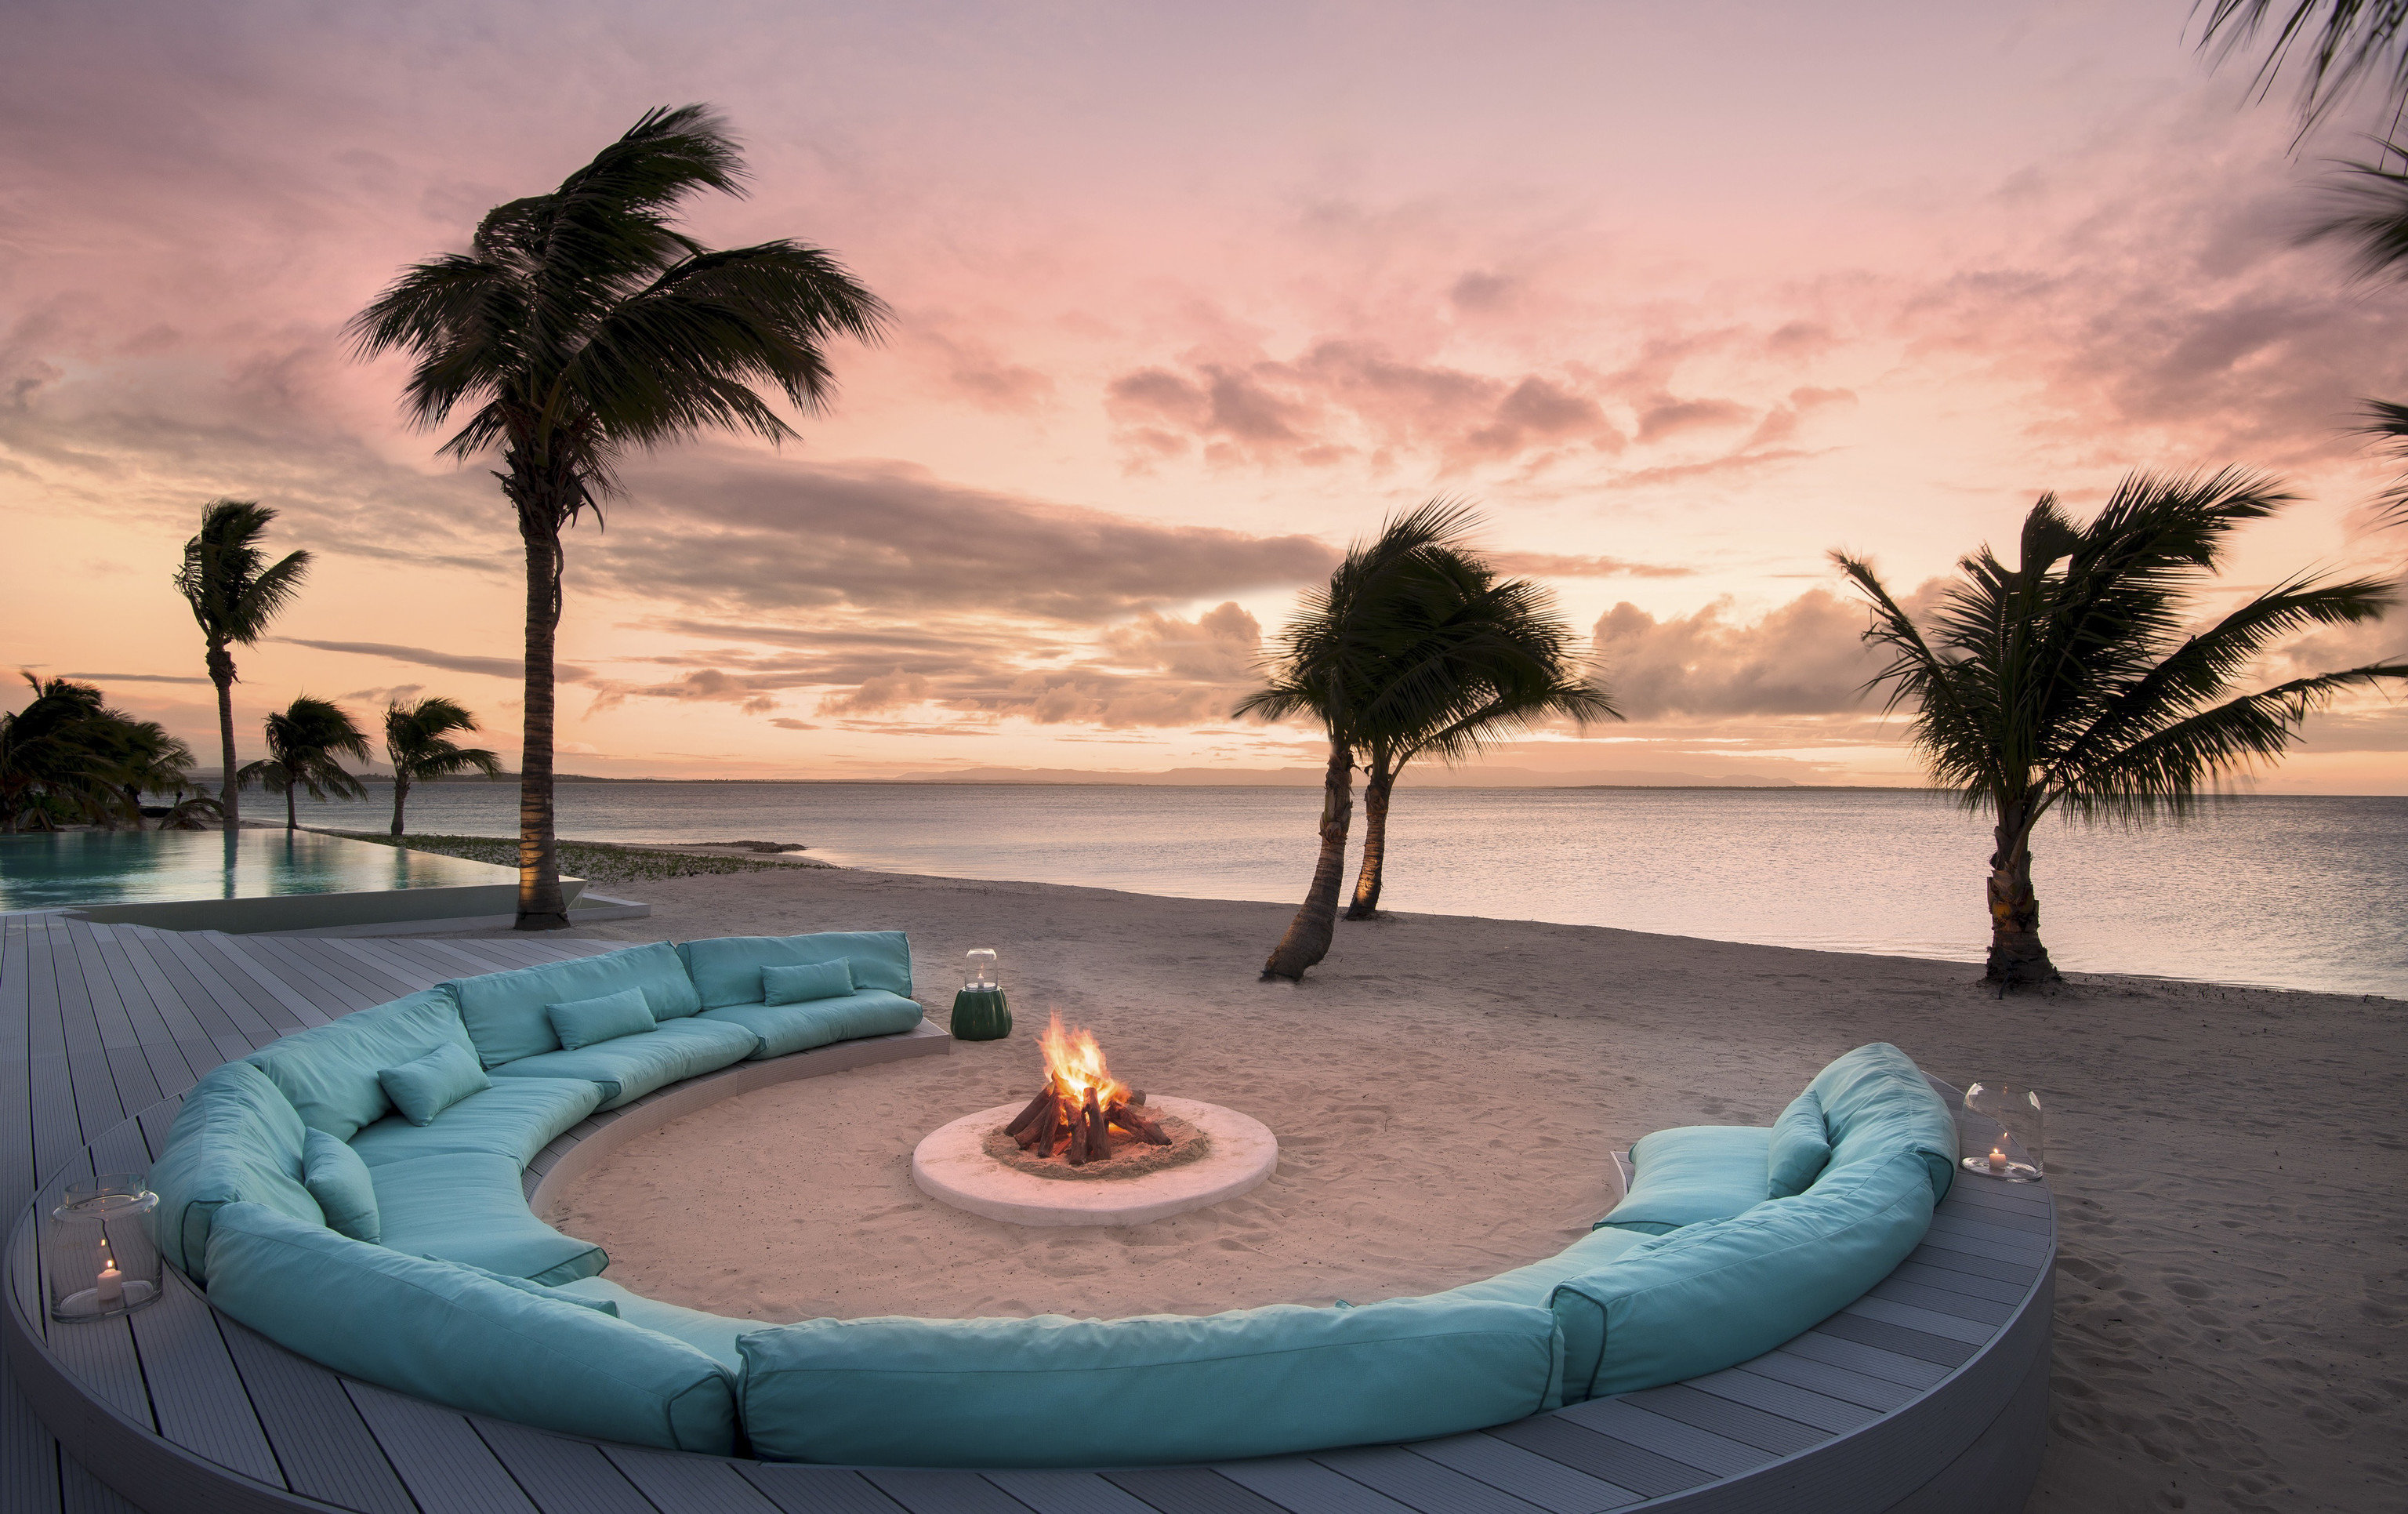 Boutique Hotels Hotels Luxury Travel water sky palm tree arecales tree Sea Sunset plant vacation reflection evening sunrise landscape tropics cloud palm horizon swimming pool outdoor object